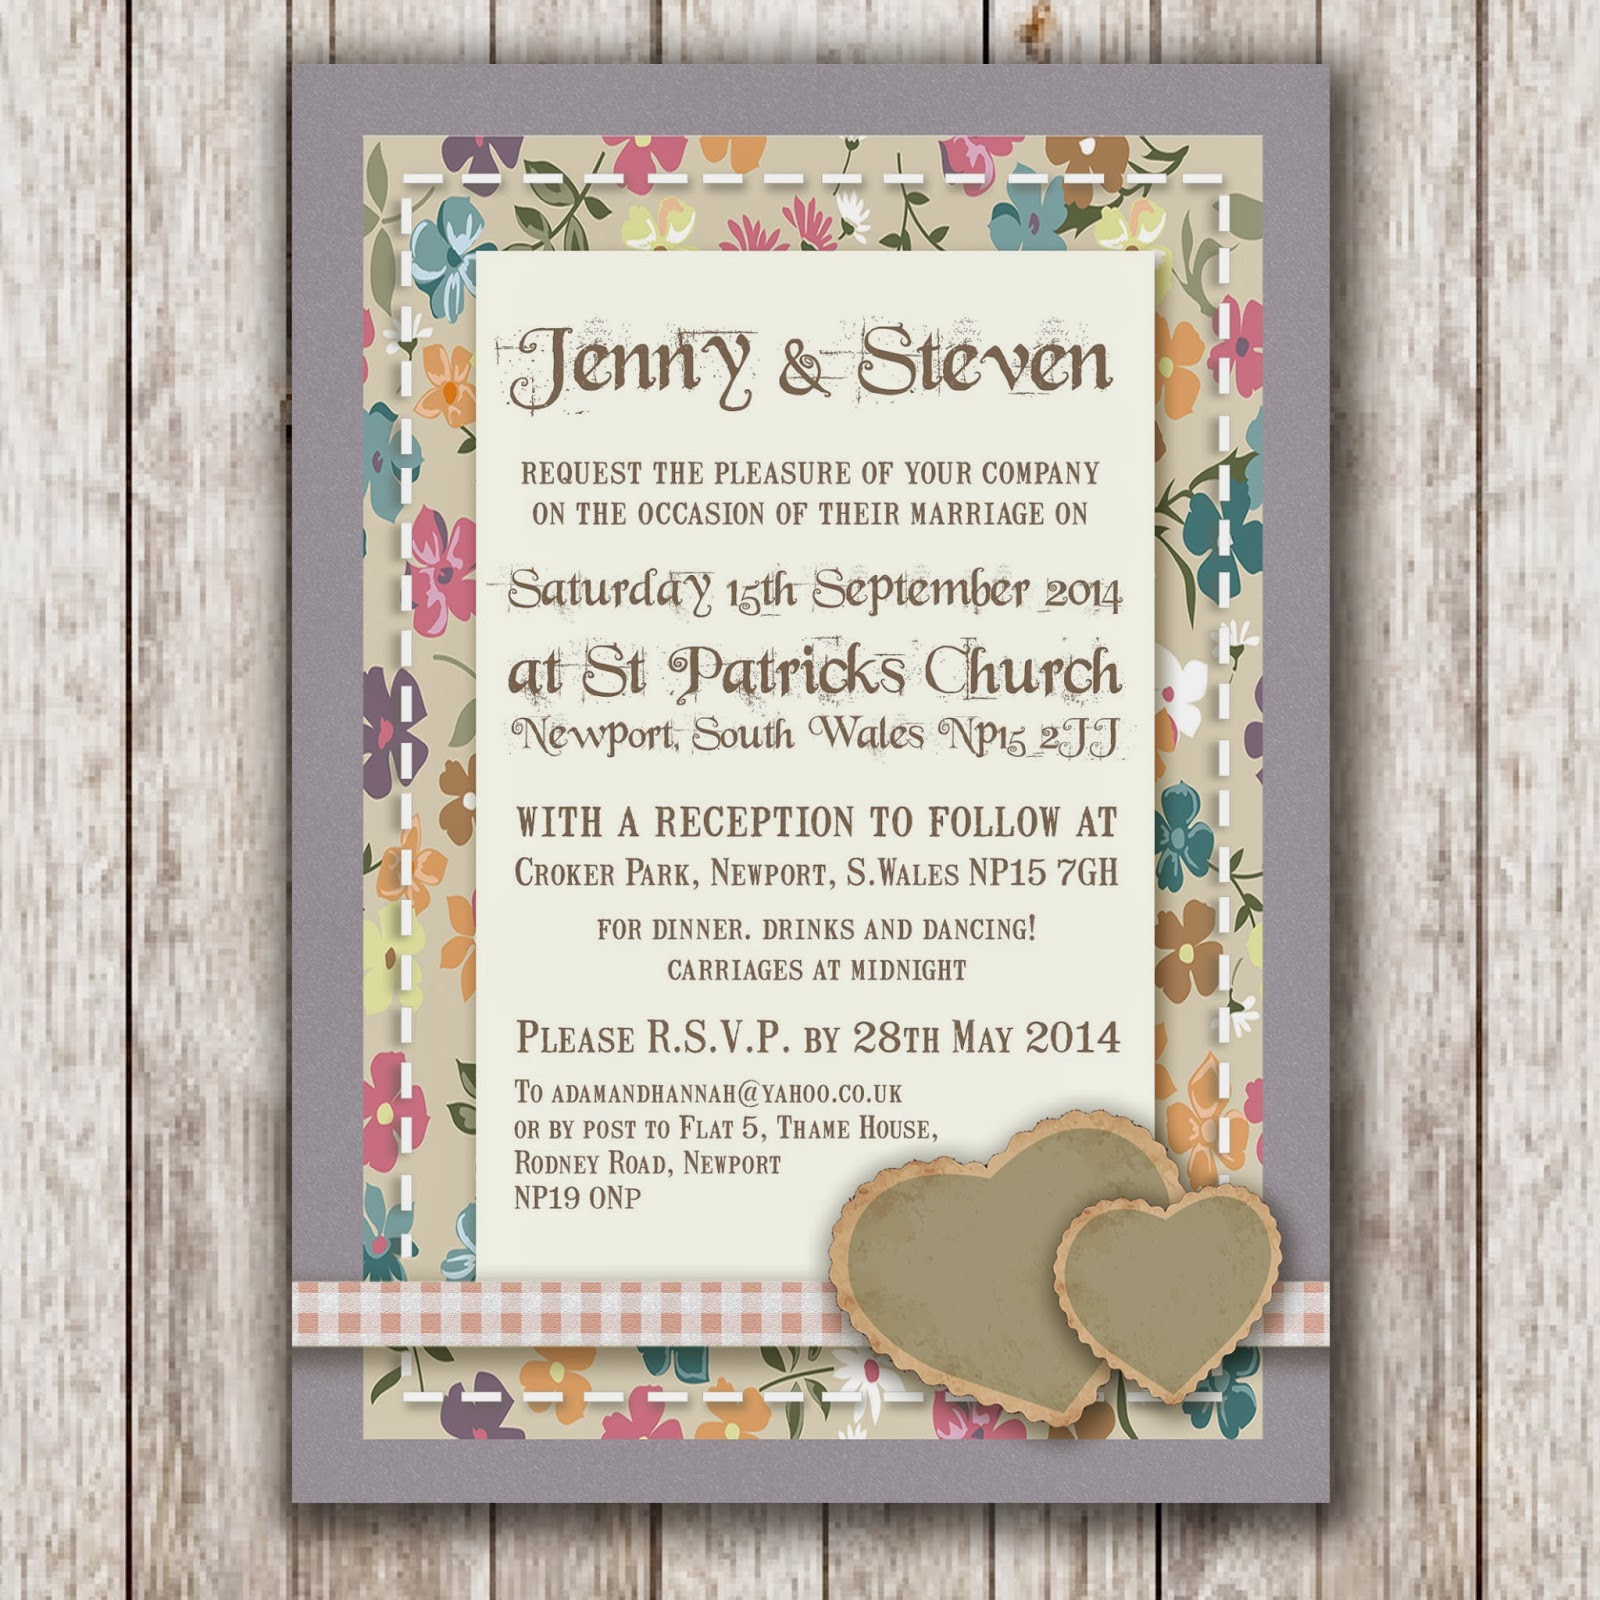 Knots and Kisses Wedding Stationery: New Range of Digital Wedding ...